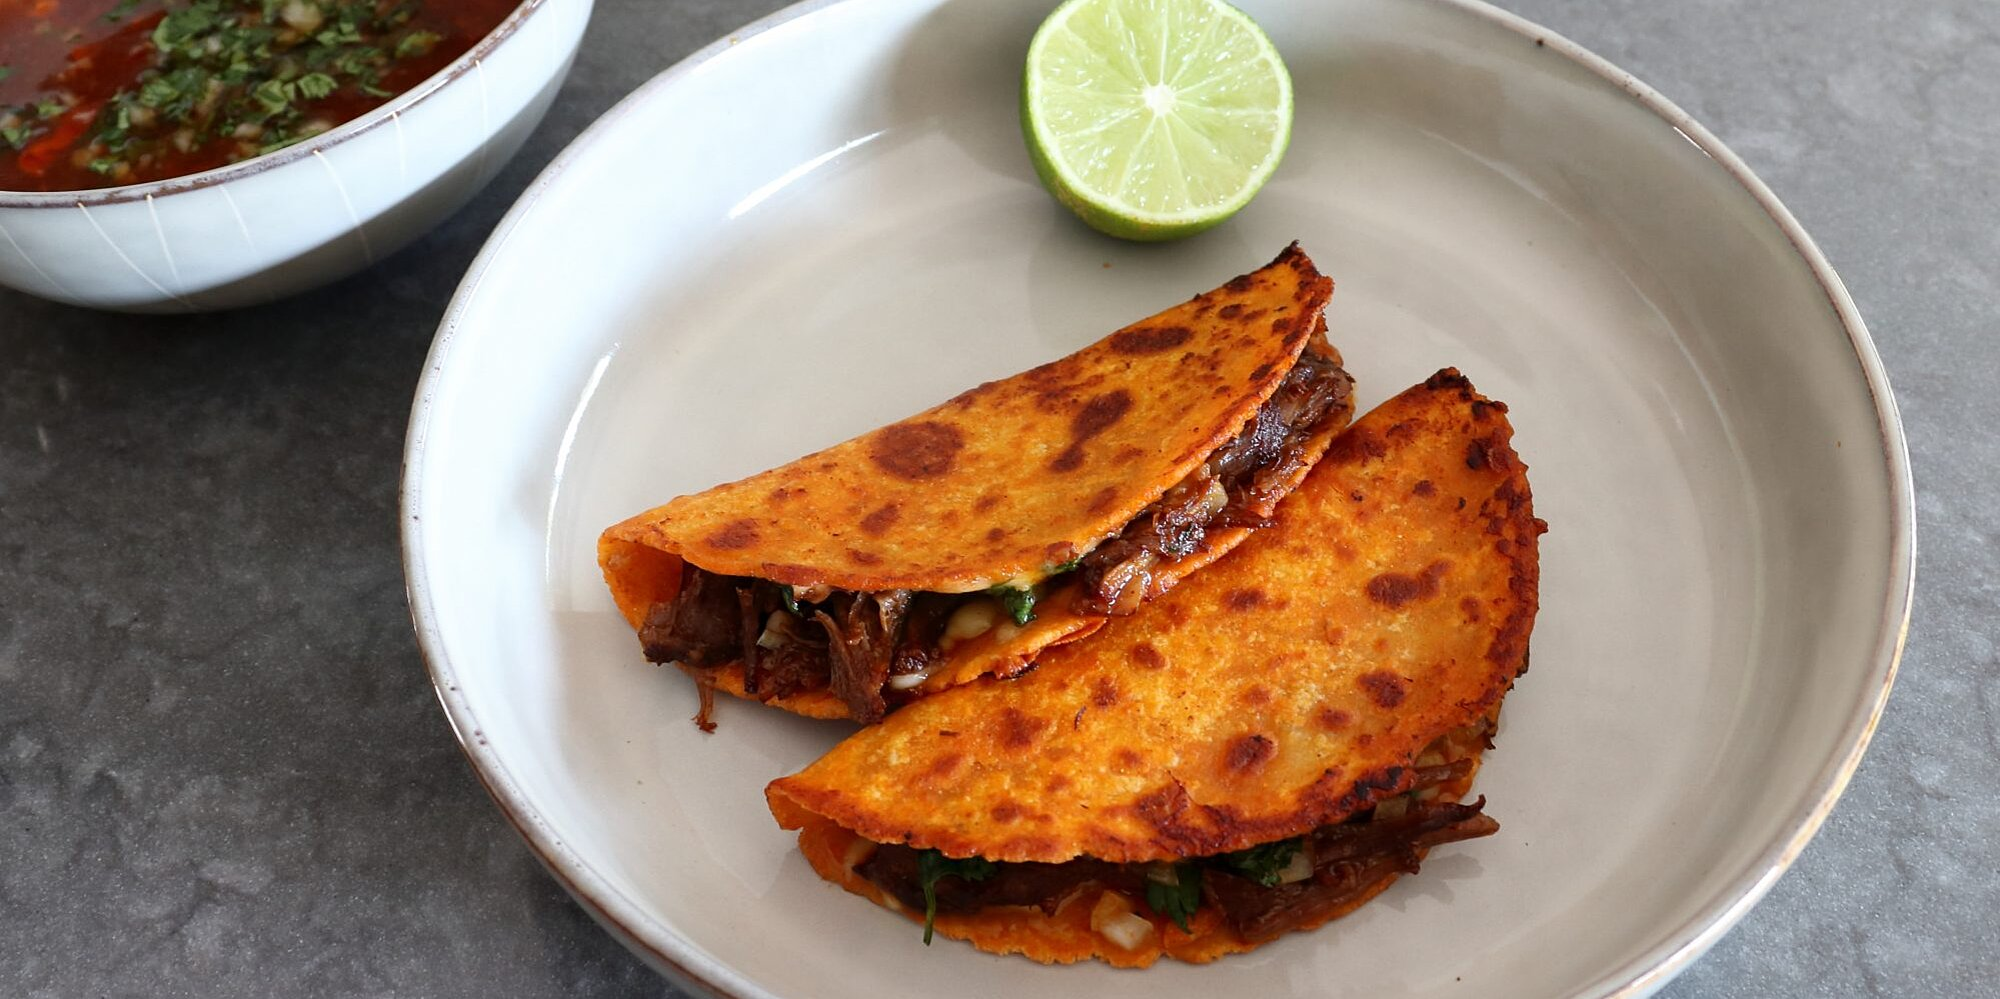 turn chef johns savory beef stew into delicious birria tacos on